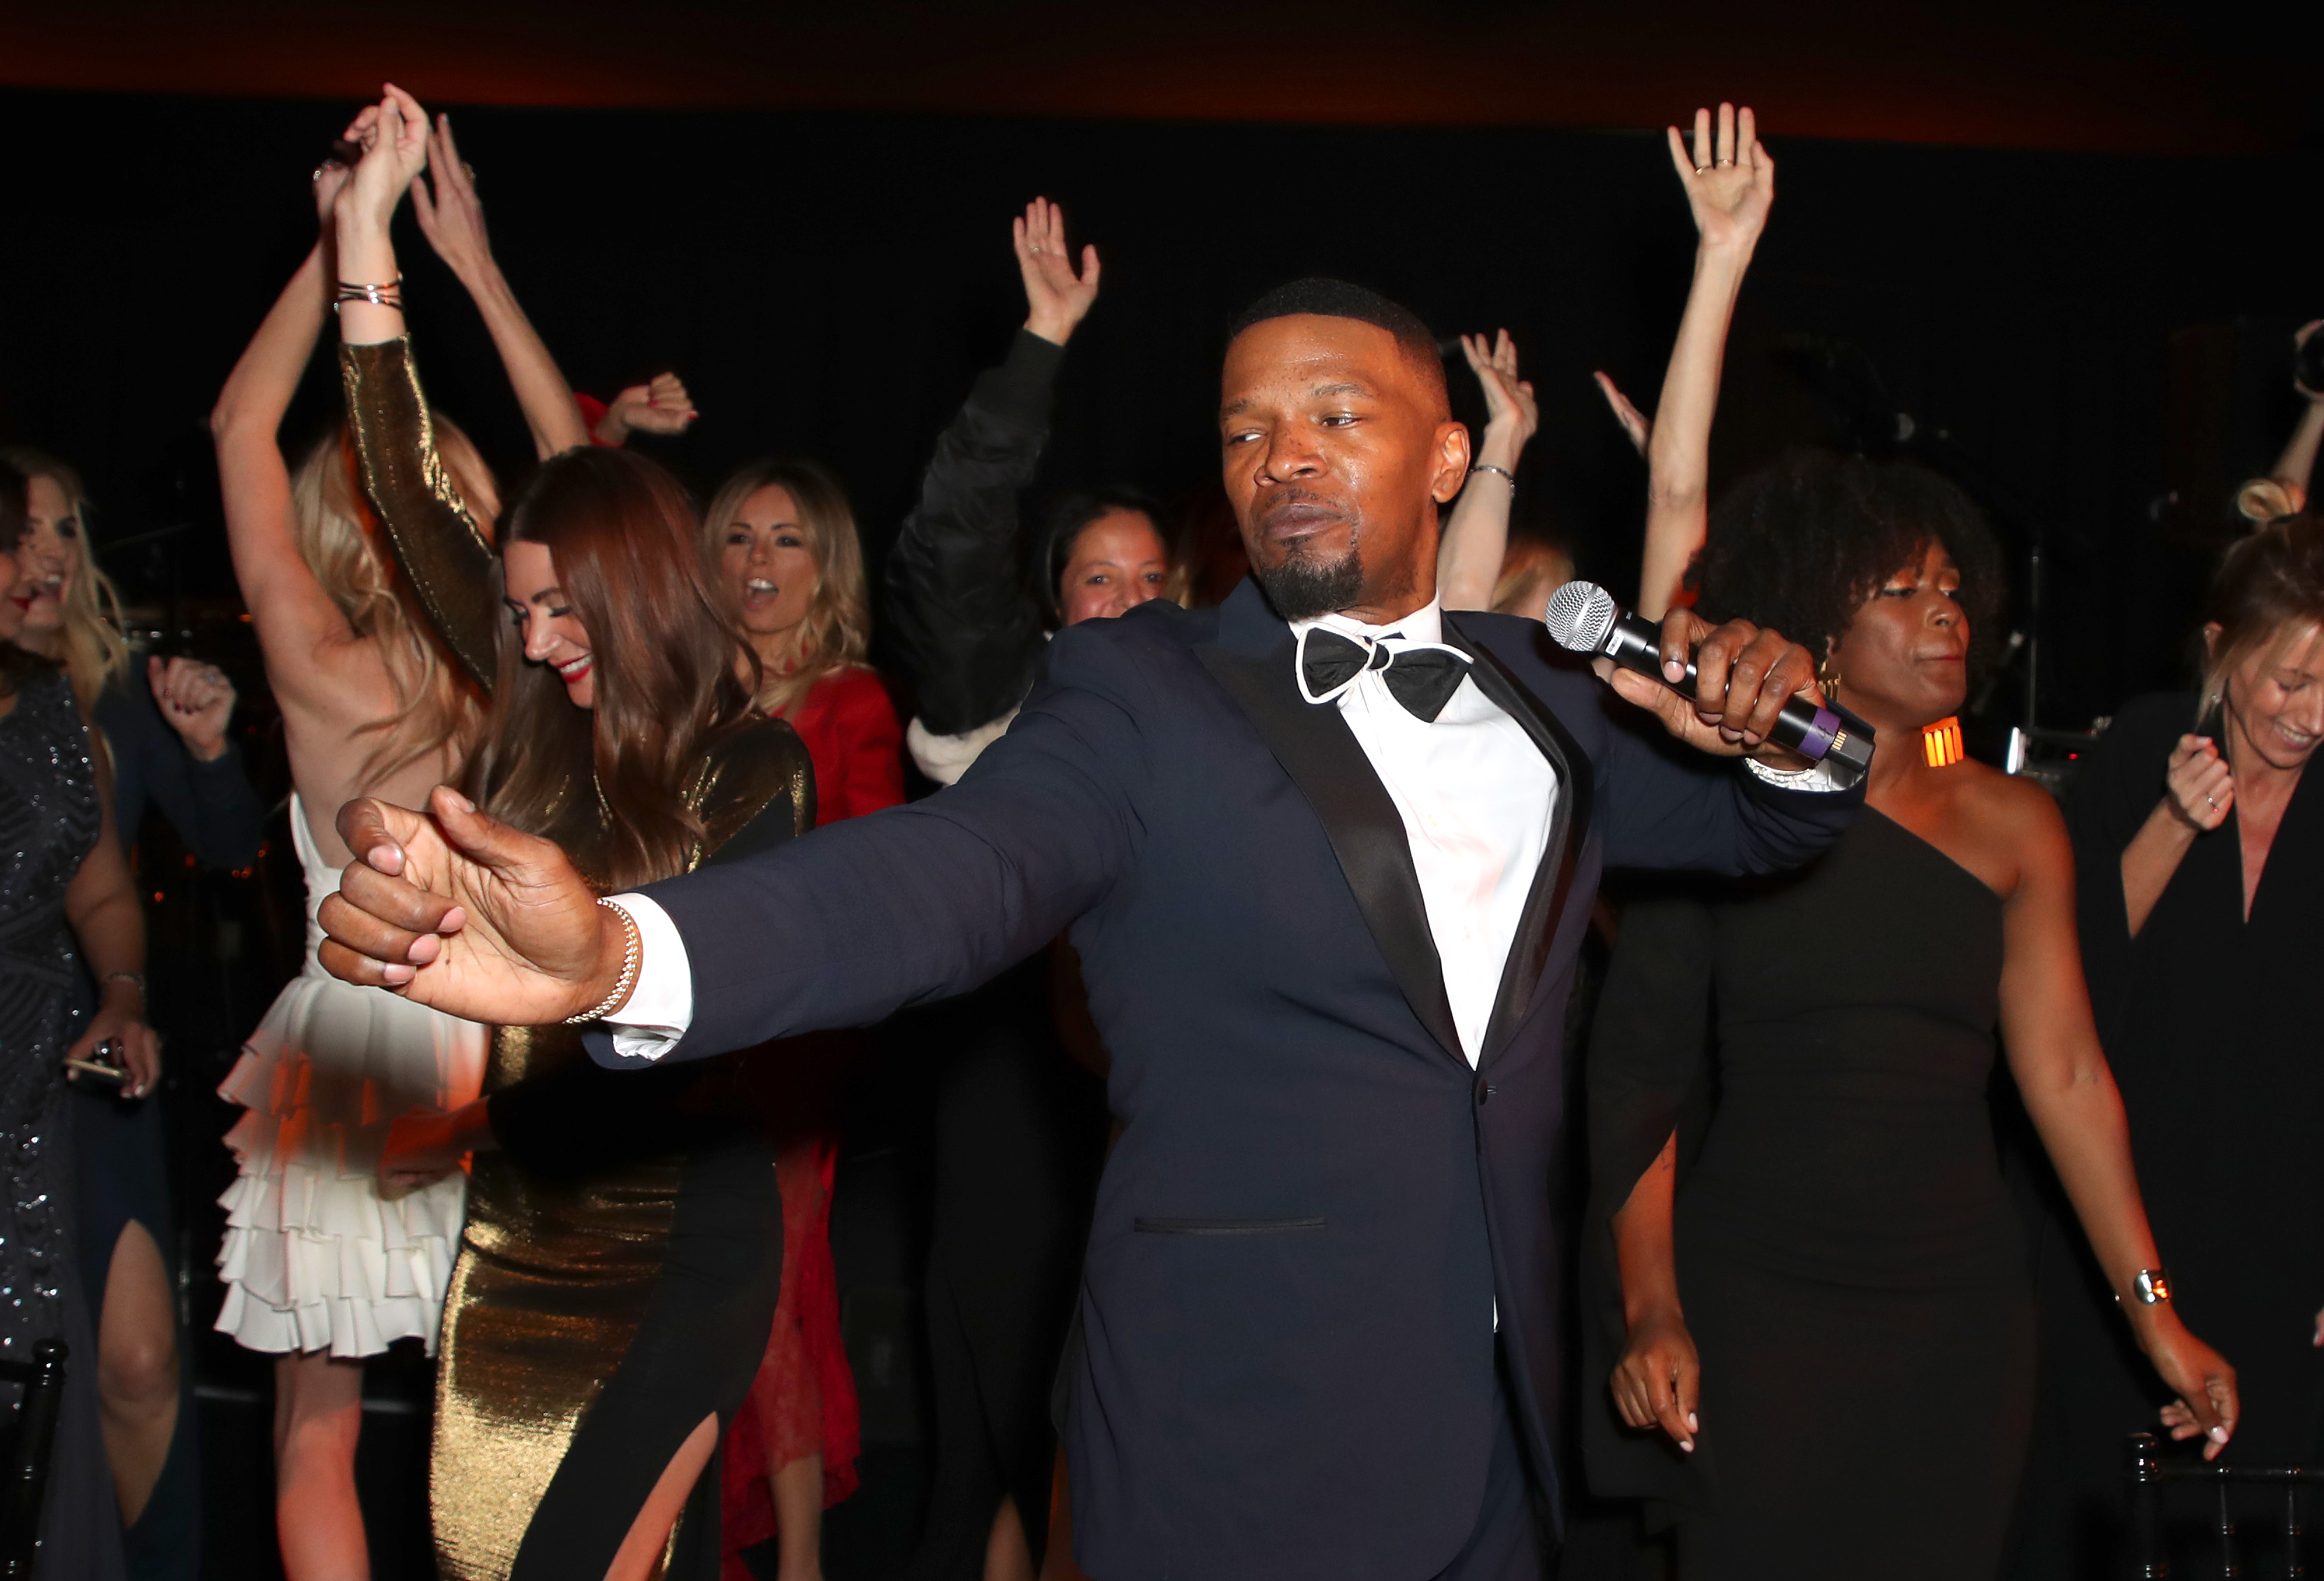 Jamie Foxx The Winter Gala, Inside, Los Angeles, USA - 25 Jan 2018